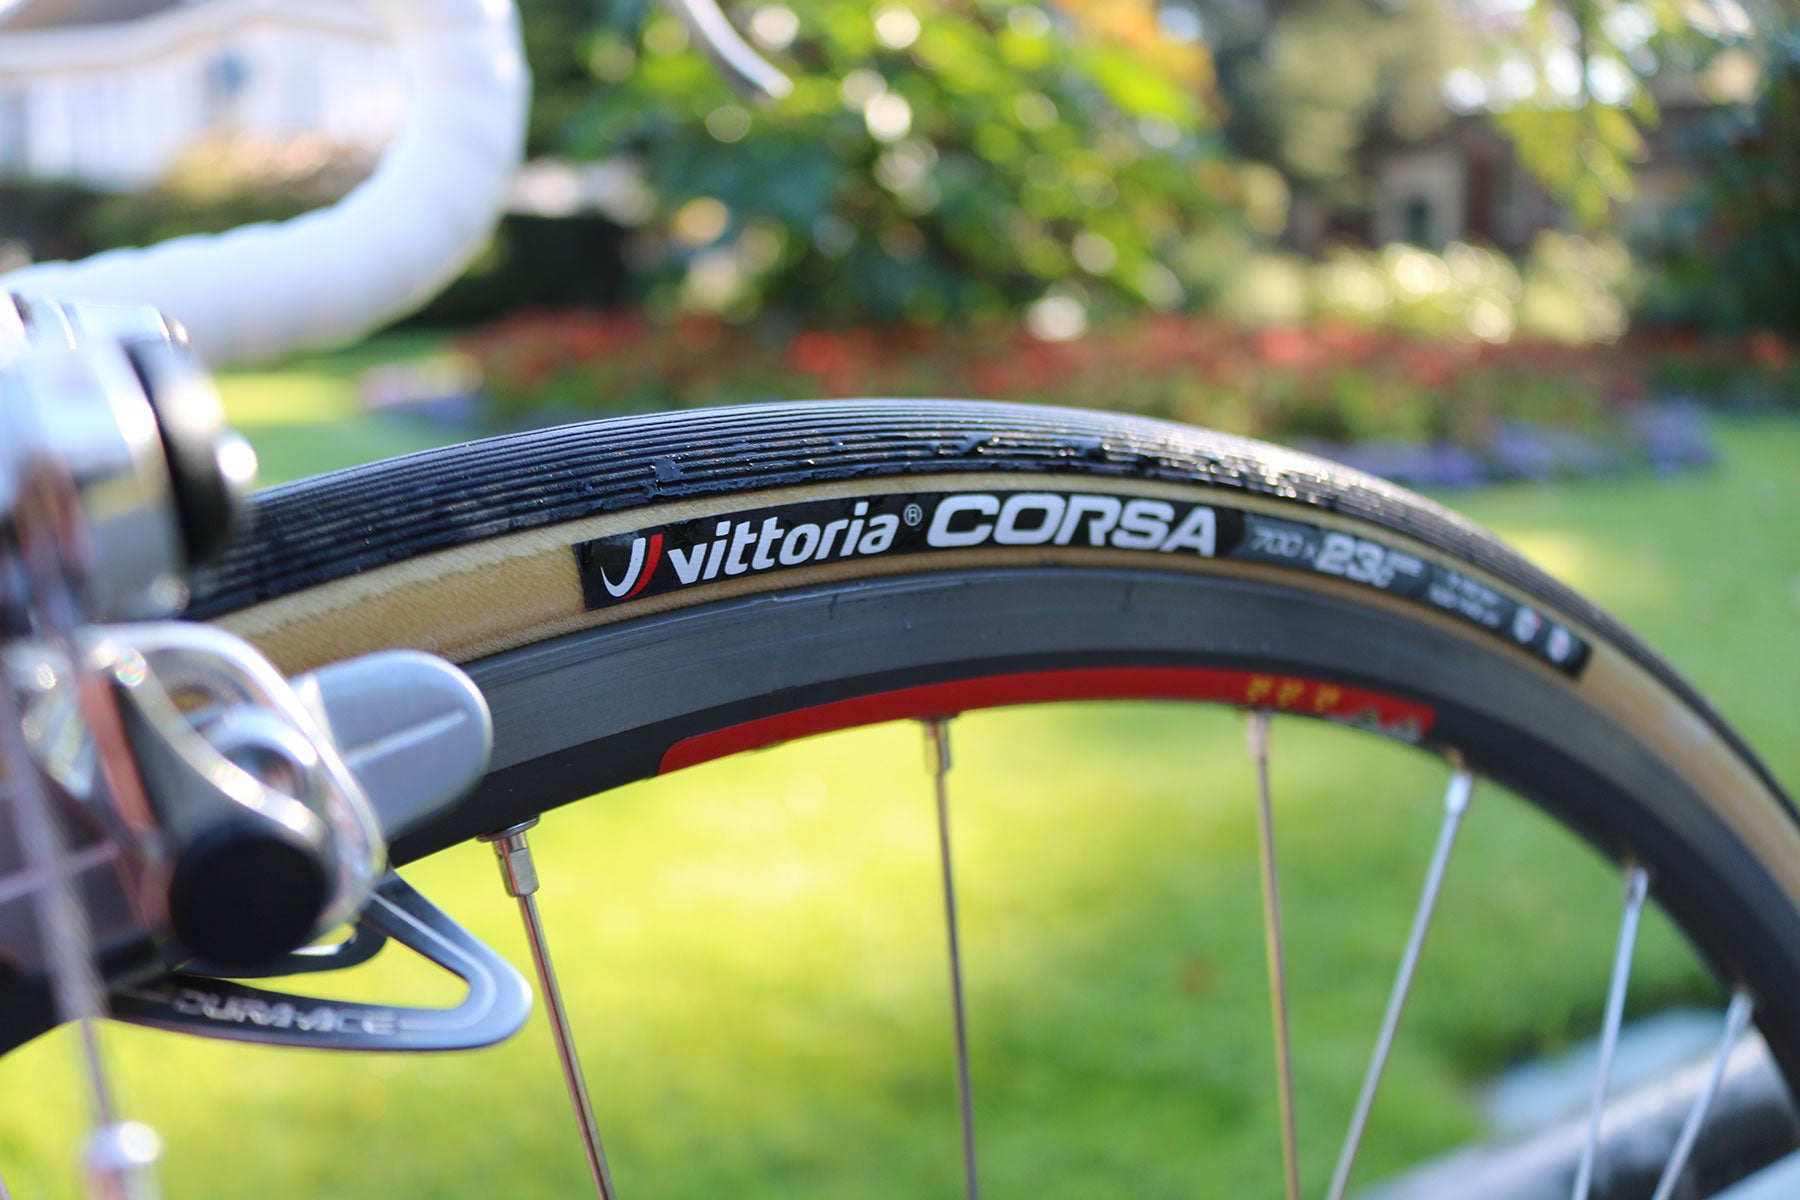 Vittoria Competiton Corsa fitted to the Mavic Open Pro rims.